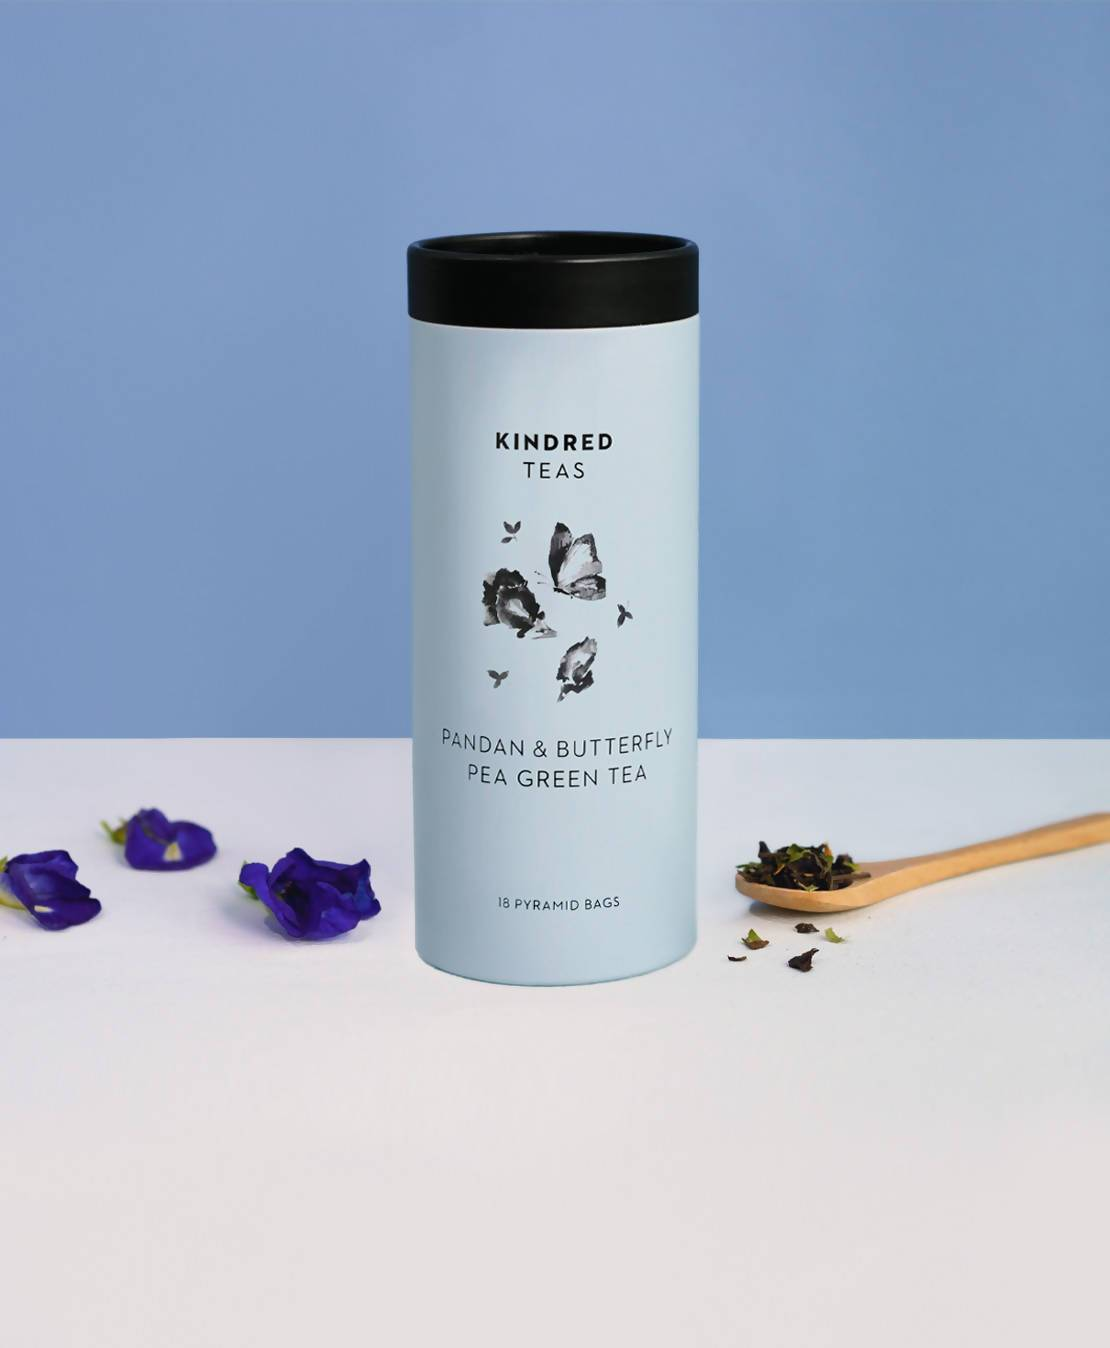 Pandan & Butterfly Pea Green Tea - Local Tea - Kindred Teas - Naiise